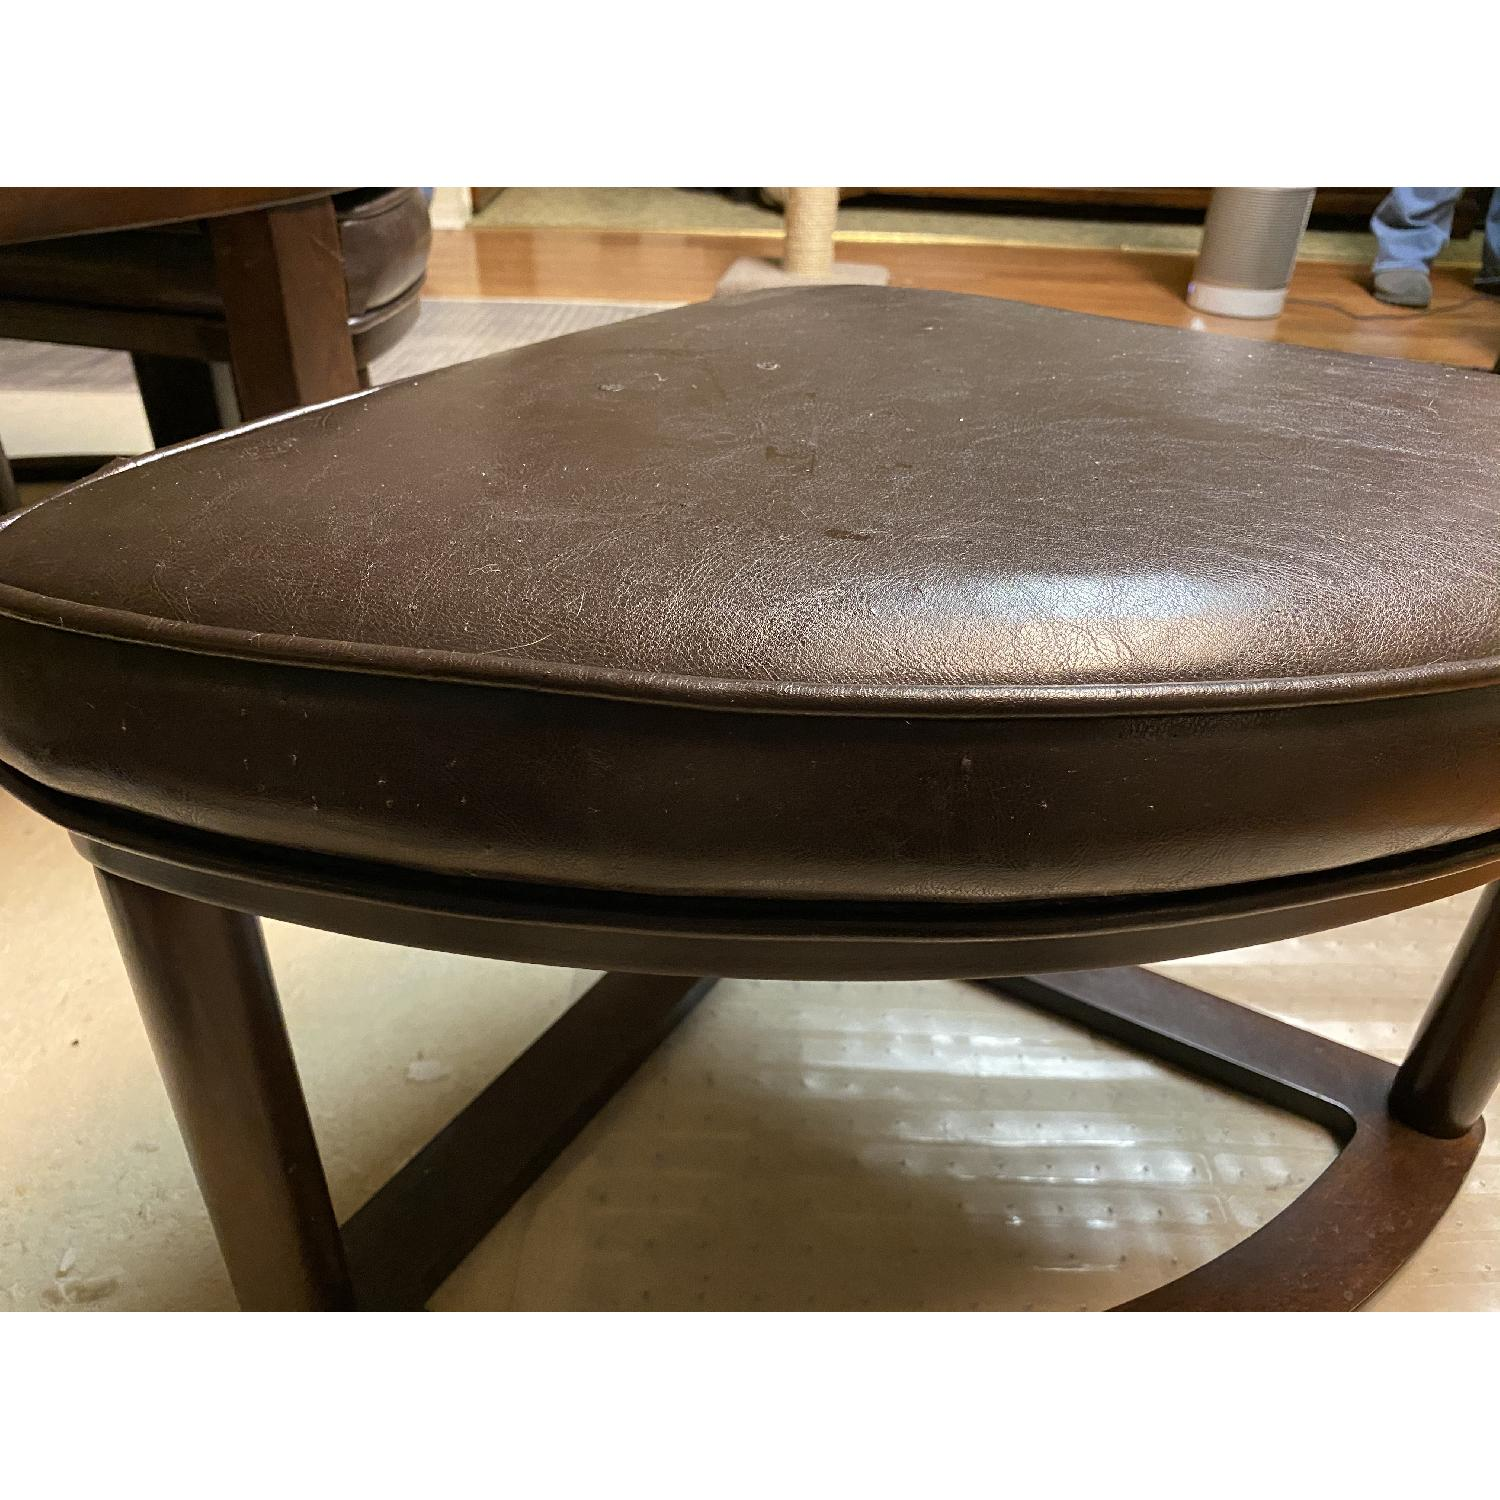 Round Glass Top Coffee Table w/ 4 Ottomans - image-12